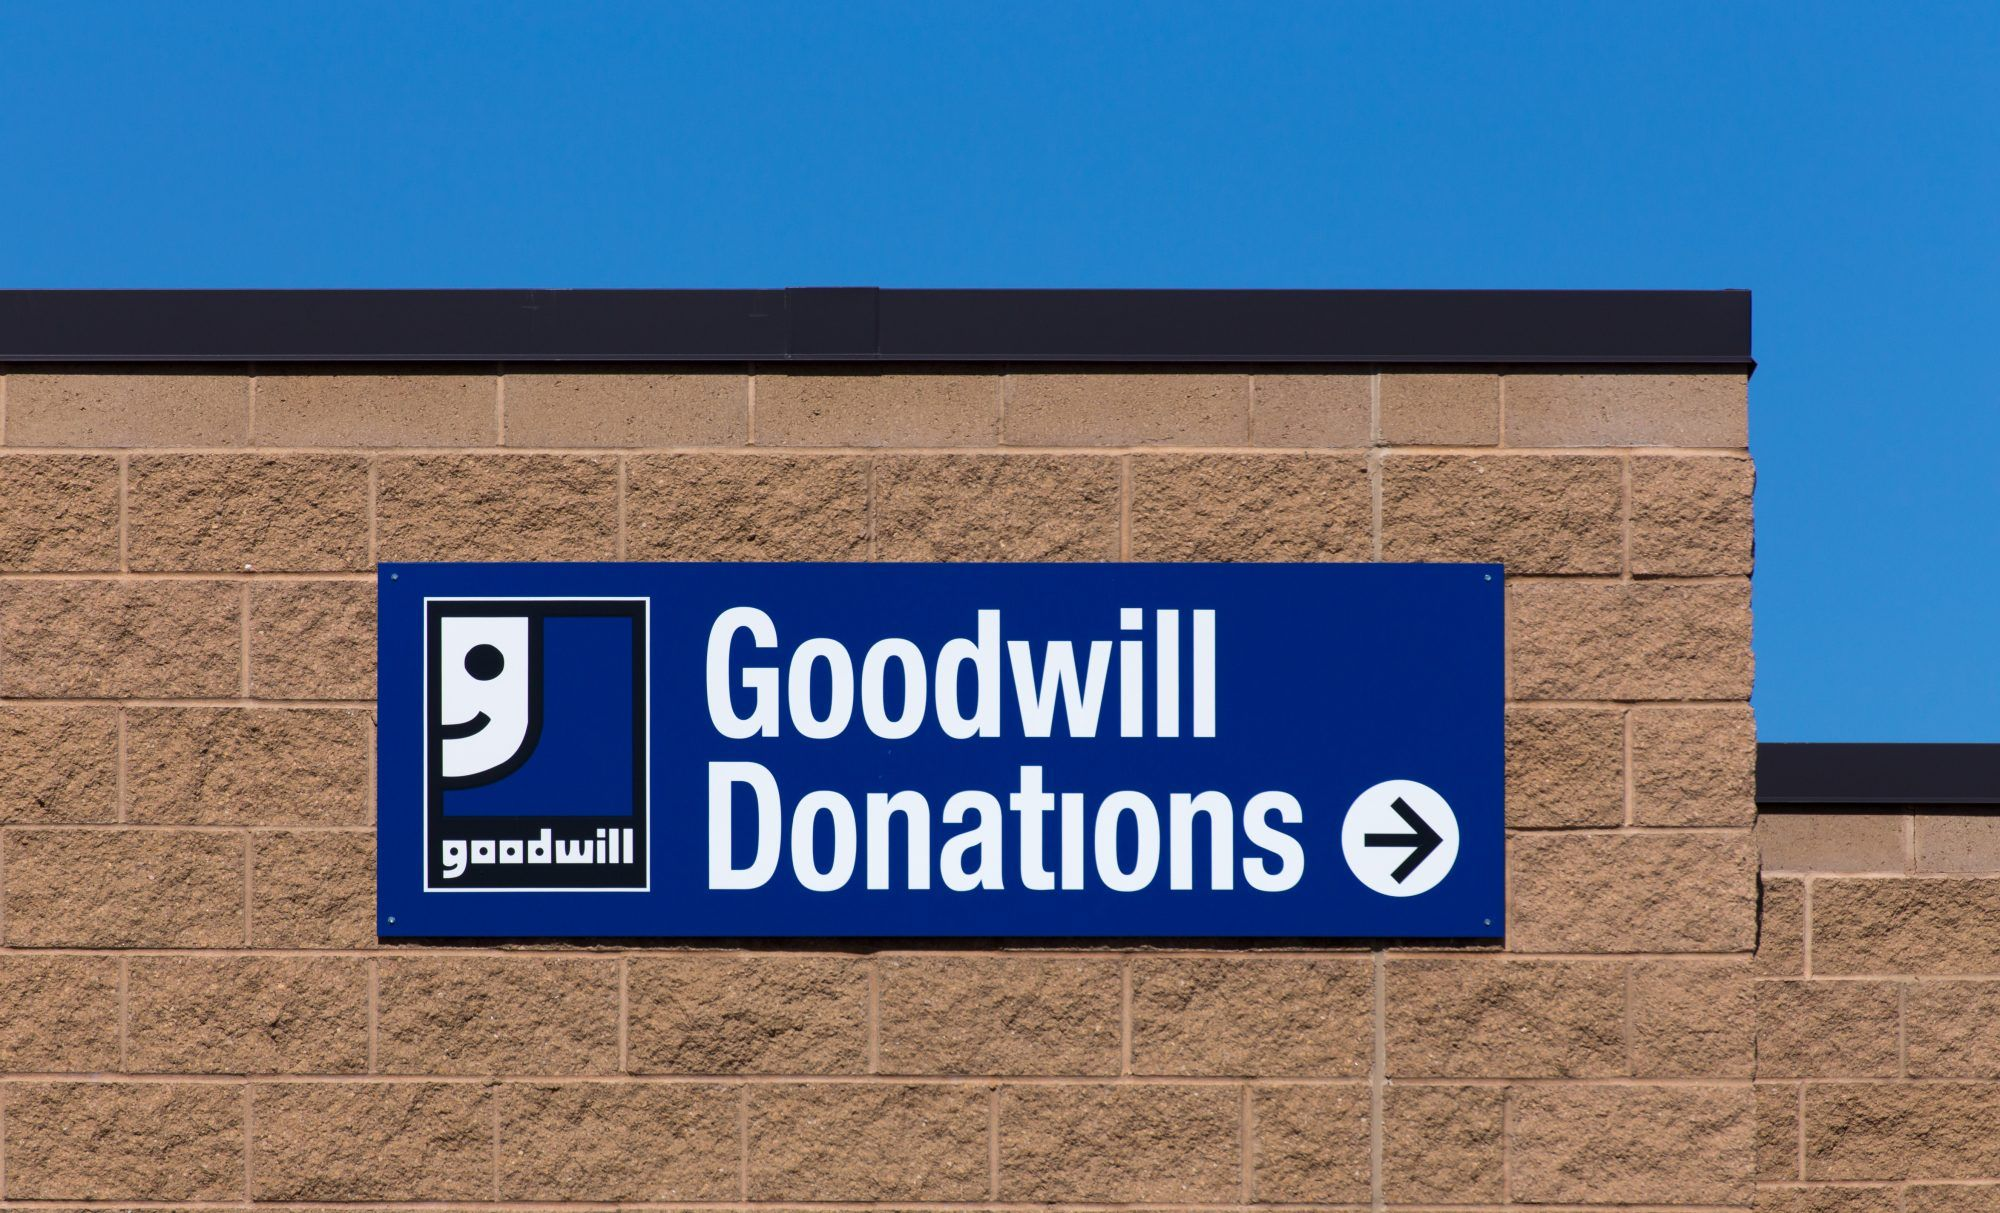 Donating Furniture Charity Organization That Will Pick Up Your Stuff Donate Furniture Charity Organizations Goodwill Furniture